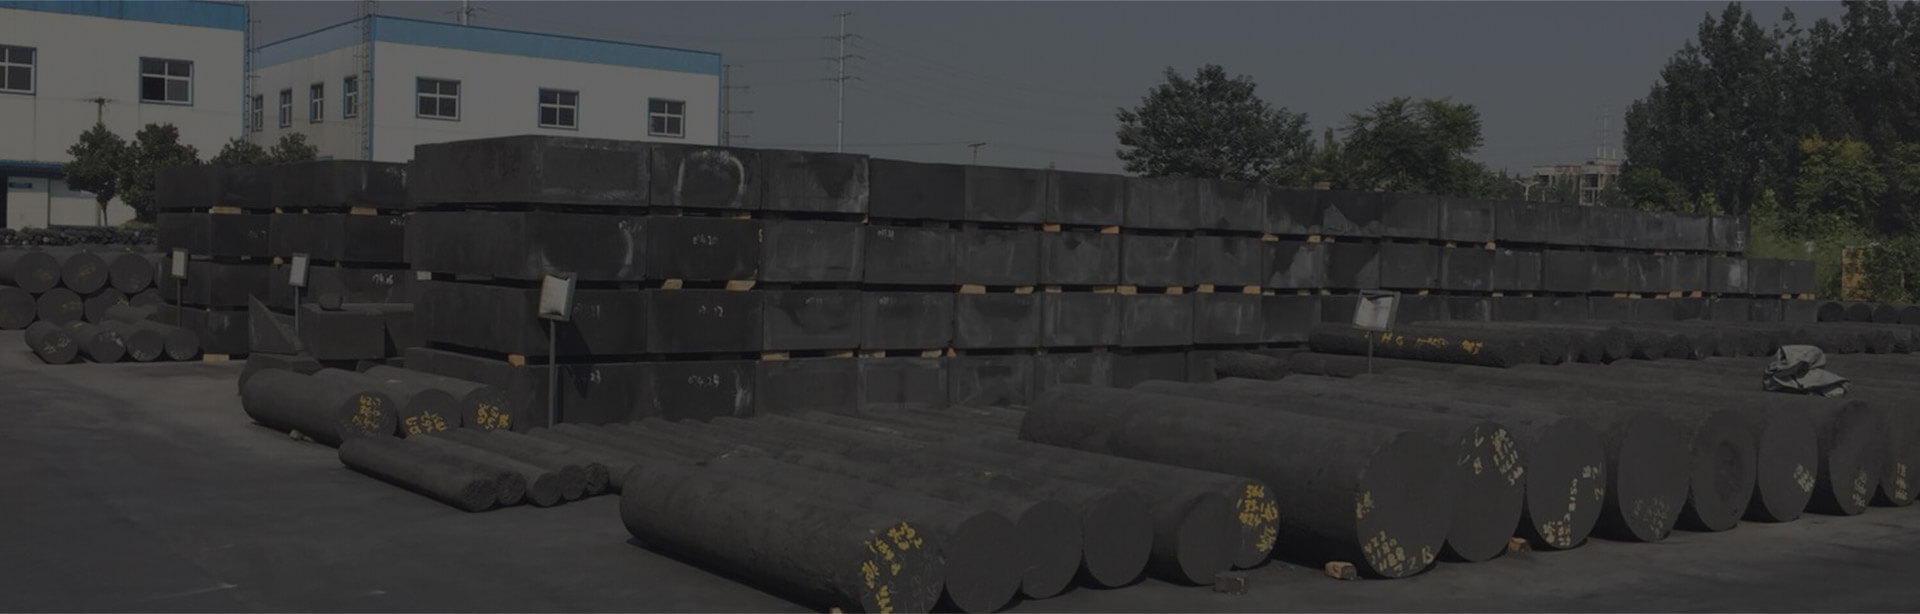 Handan Qifeng Carbon Co., Ltd. is a large carbon manufacturer in China